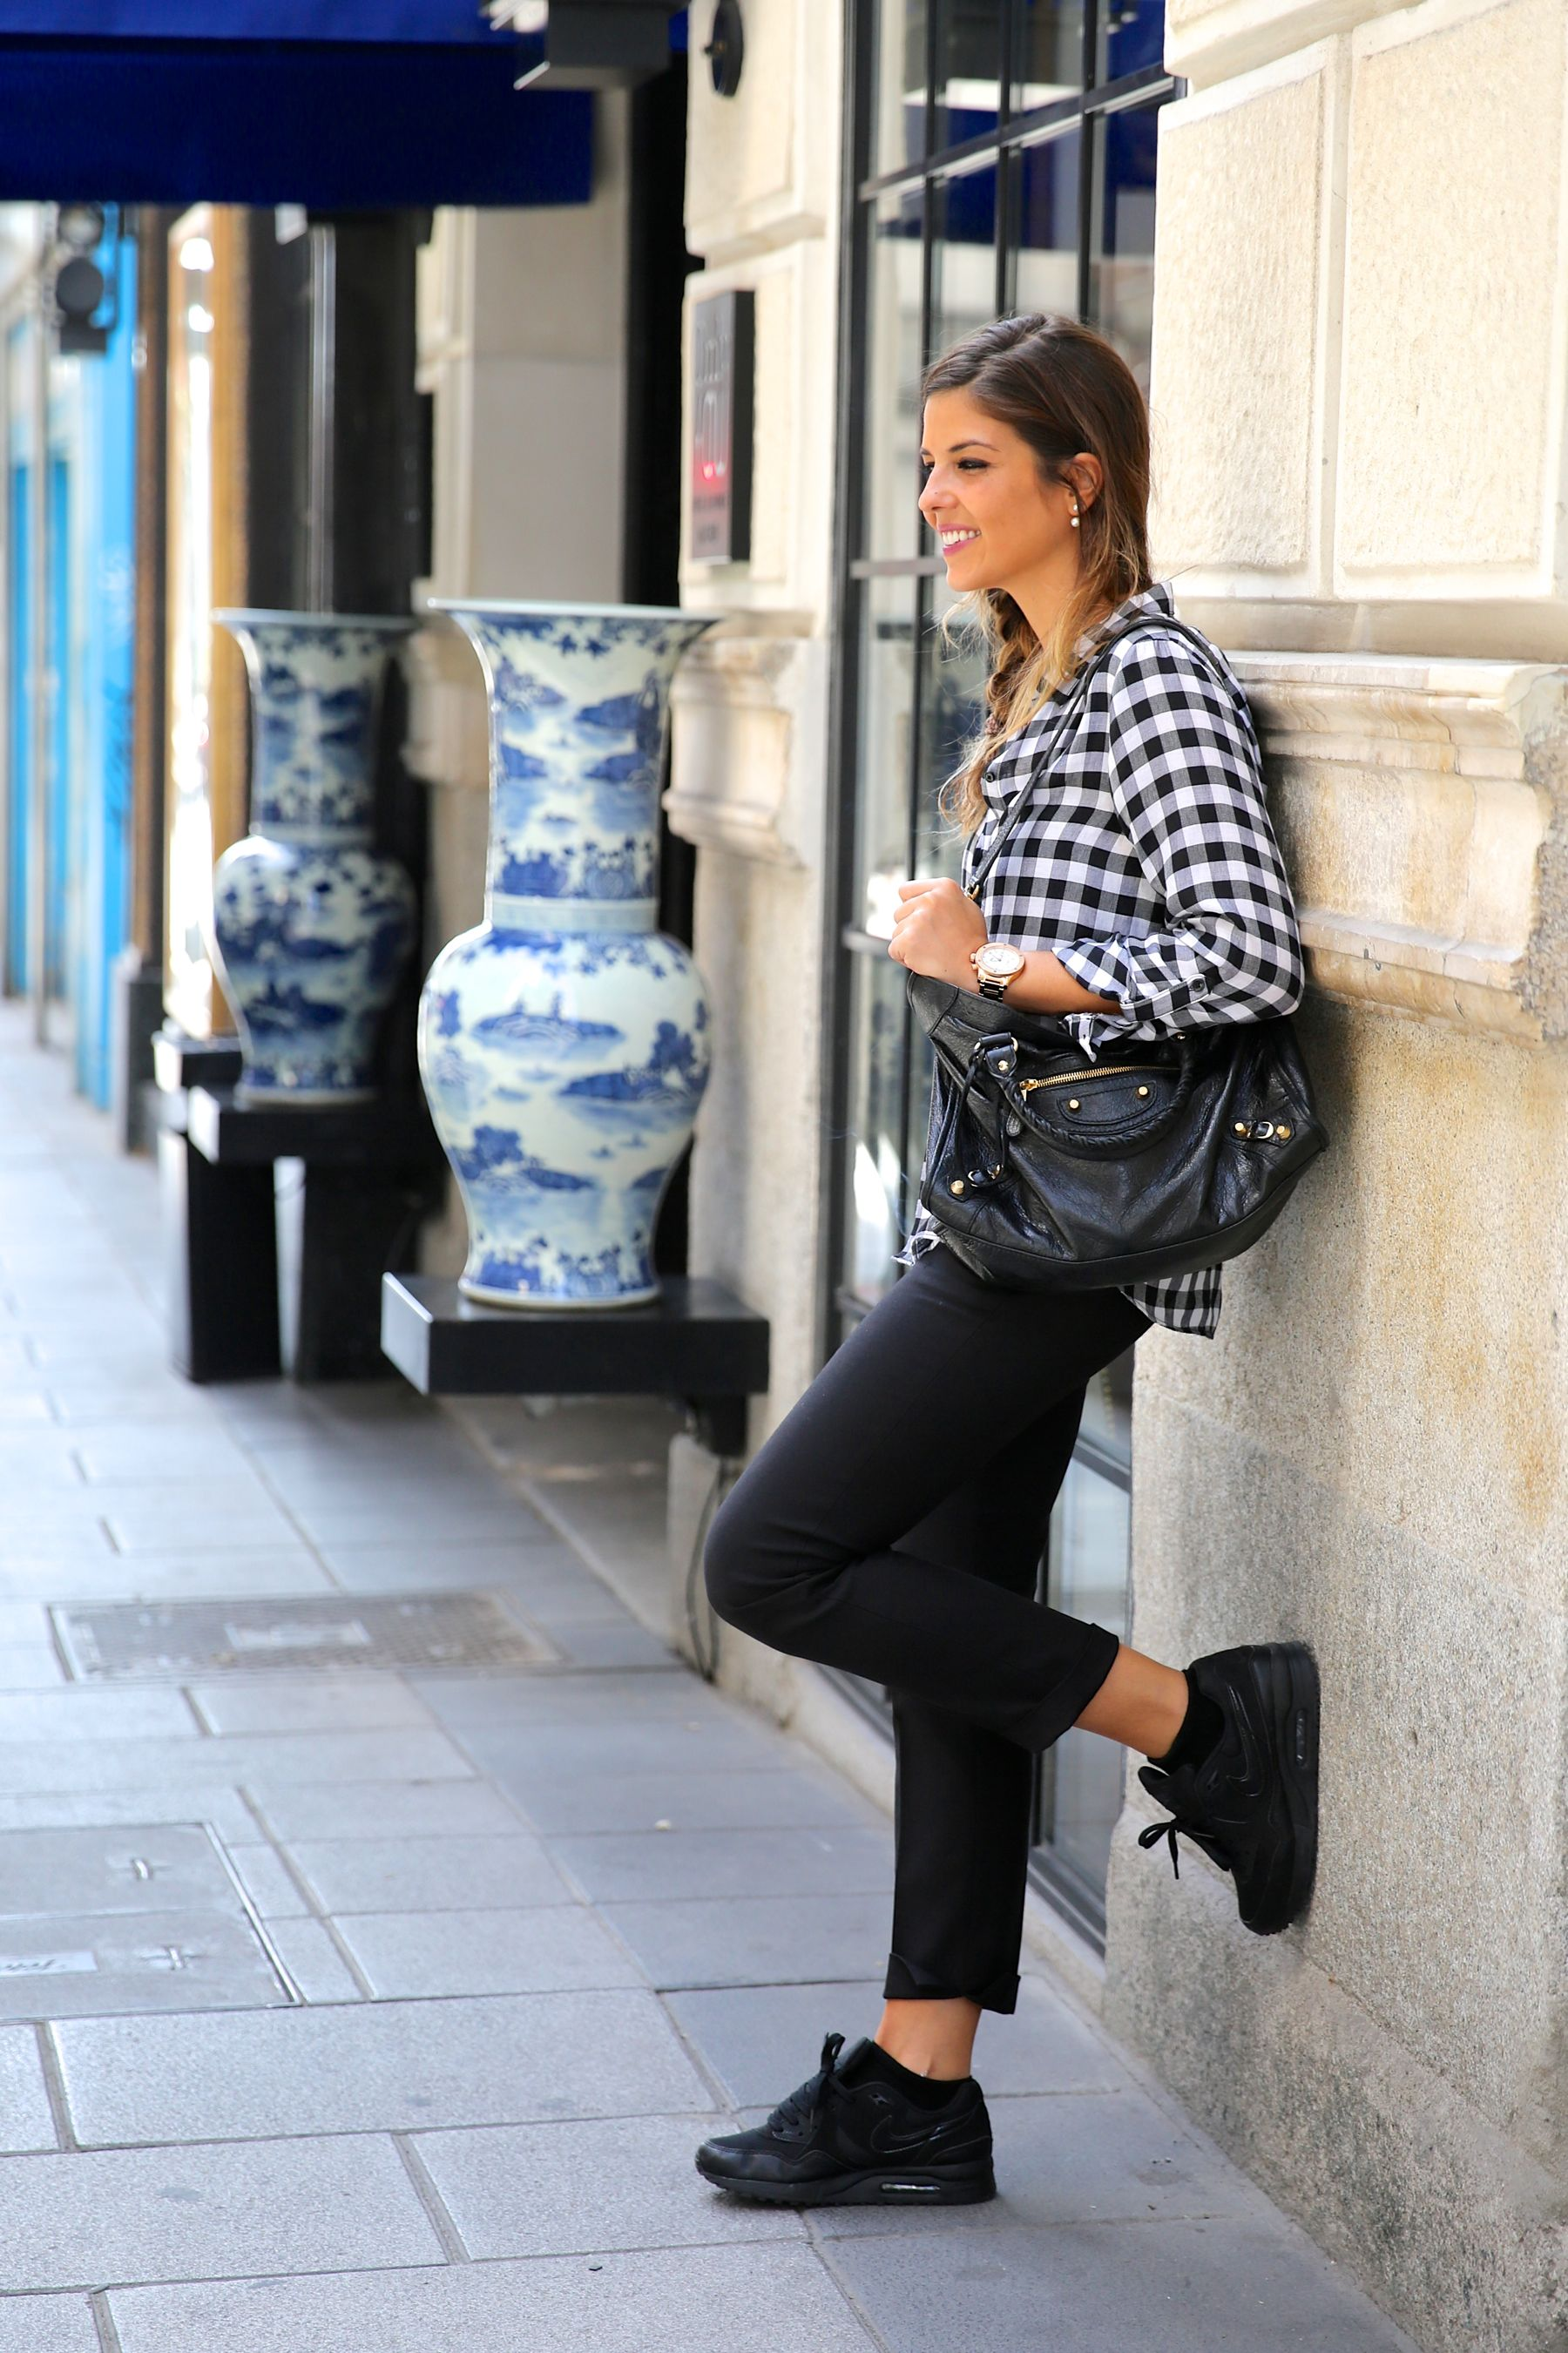 trendy_taste-look-outfit-street_style-only_you-blog-blogger-fashion_spain-moda_españa-plaid_shirt-air_max-nike-camisa_cuadros-balenciaga-city_bag-2